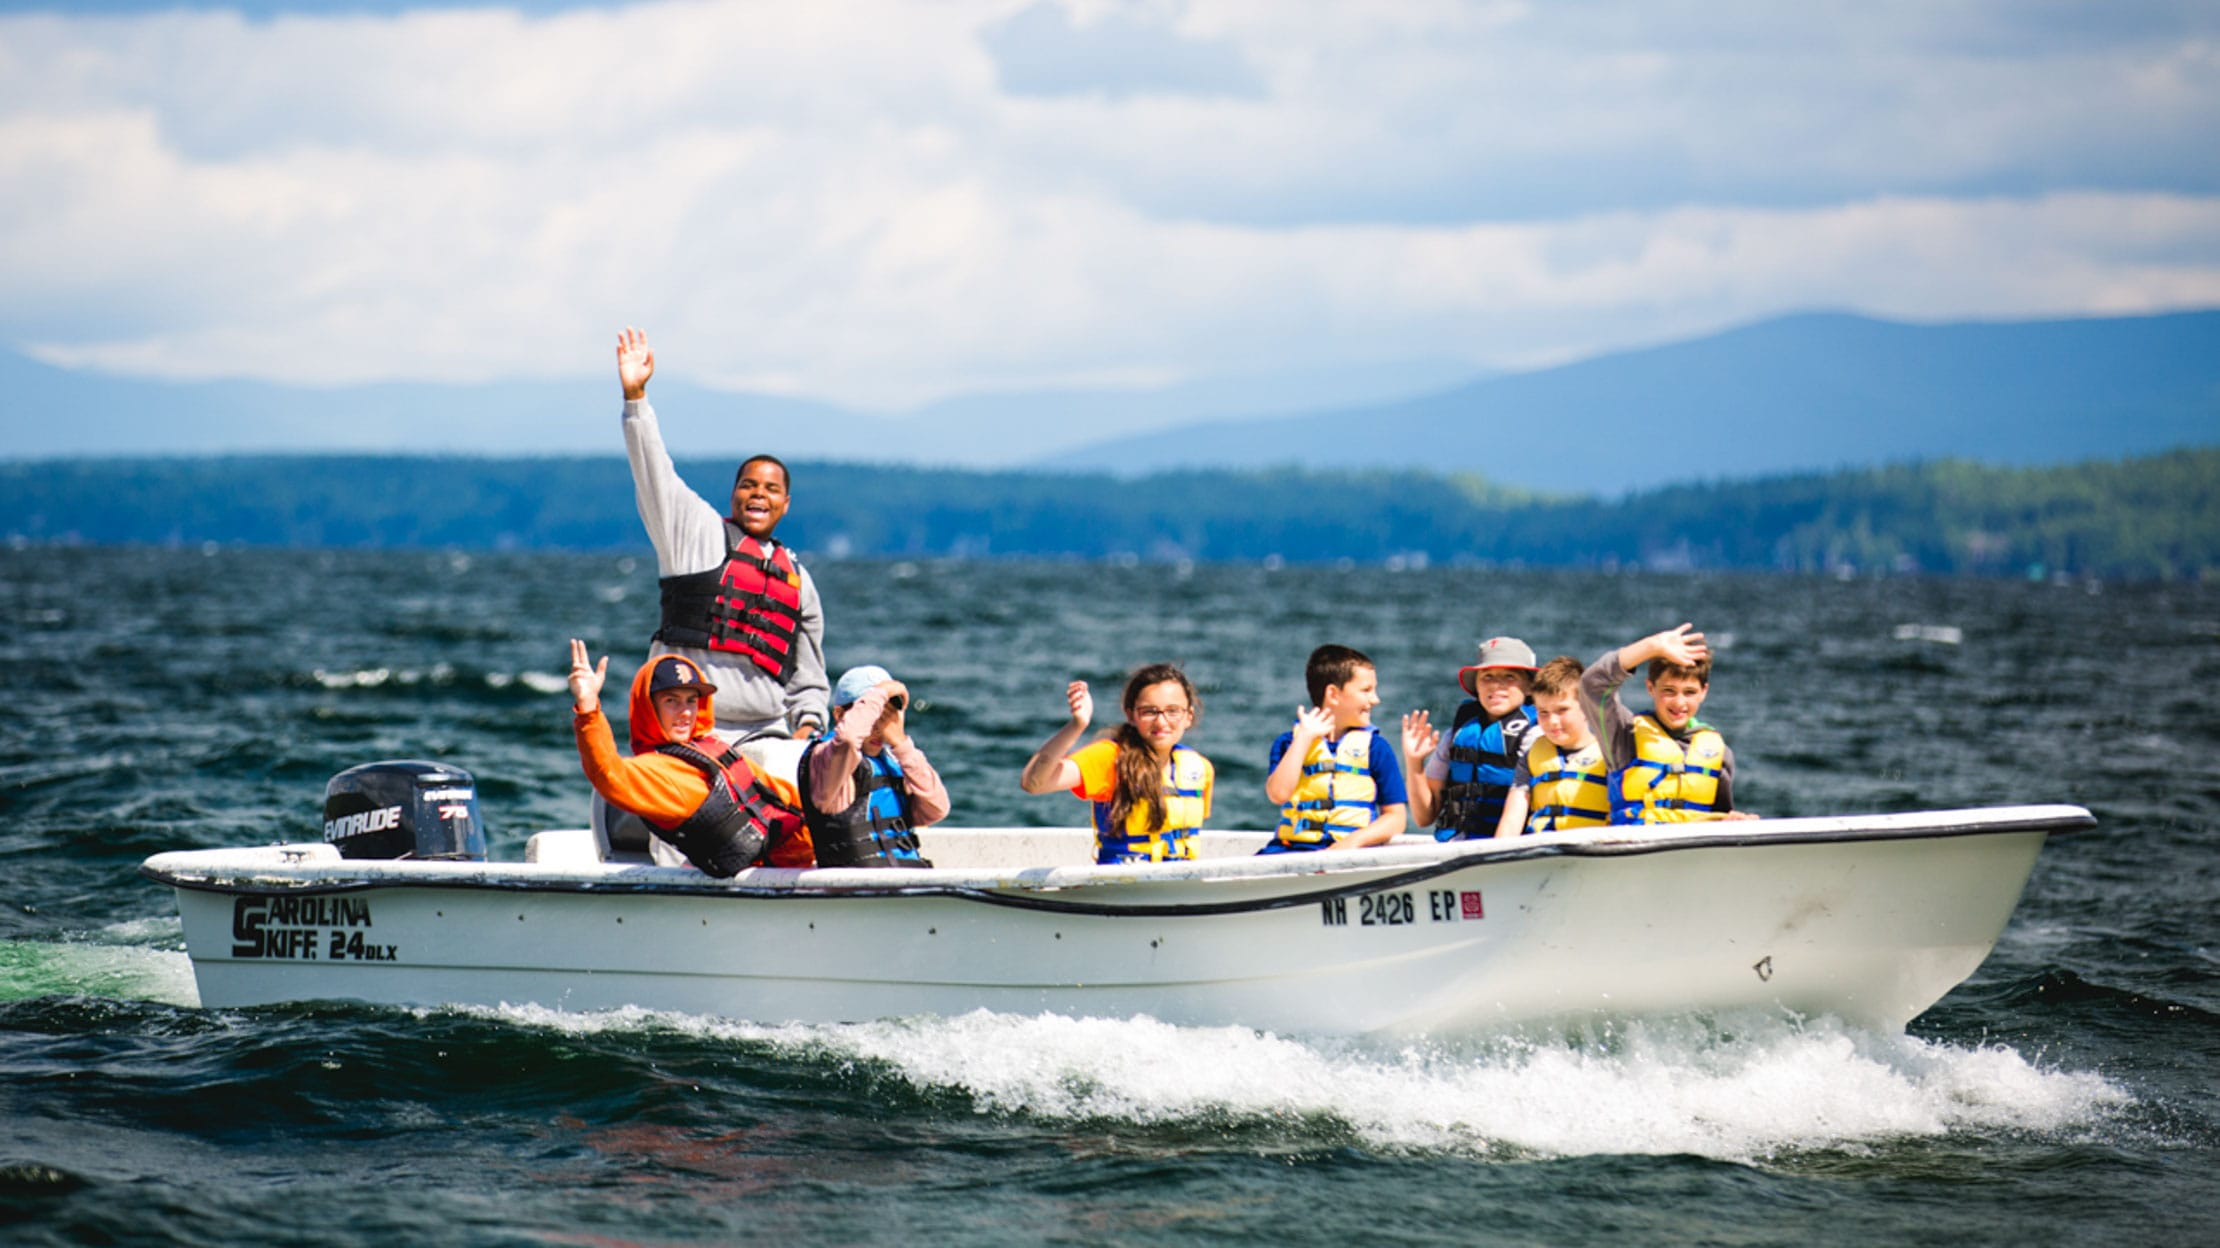 Campers on a motorboat giving a thumbs up